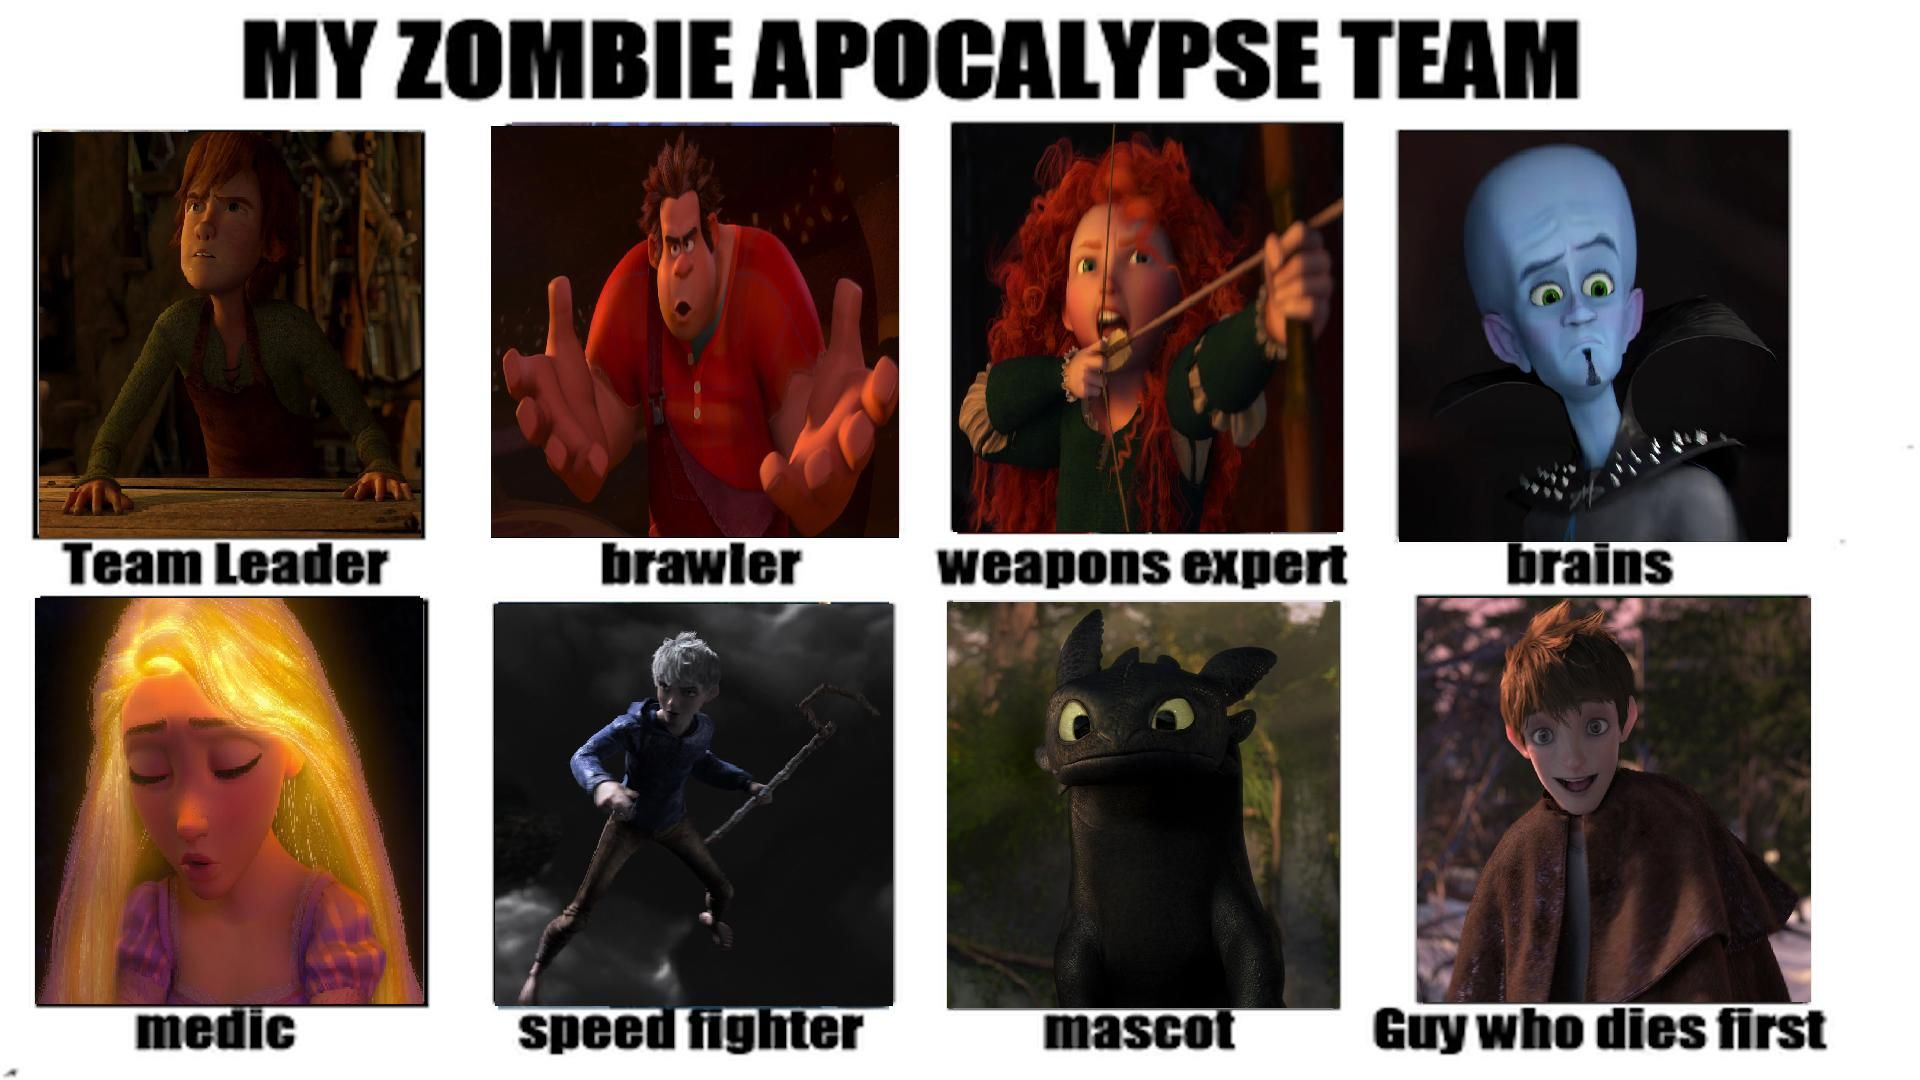 I M Not Much For Zombies But This Is Hilarious Xd And Jack Had Better Come Back With Some Frost Disney Memes Zombie Apocalypse Team Disney And Dreamworks